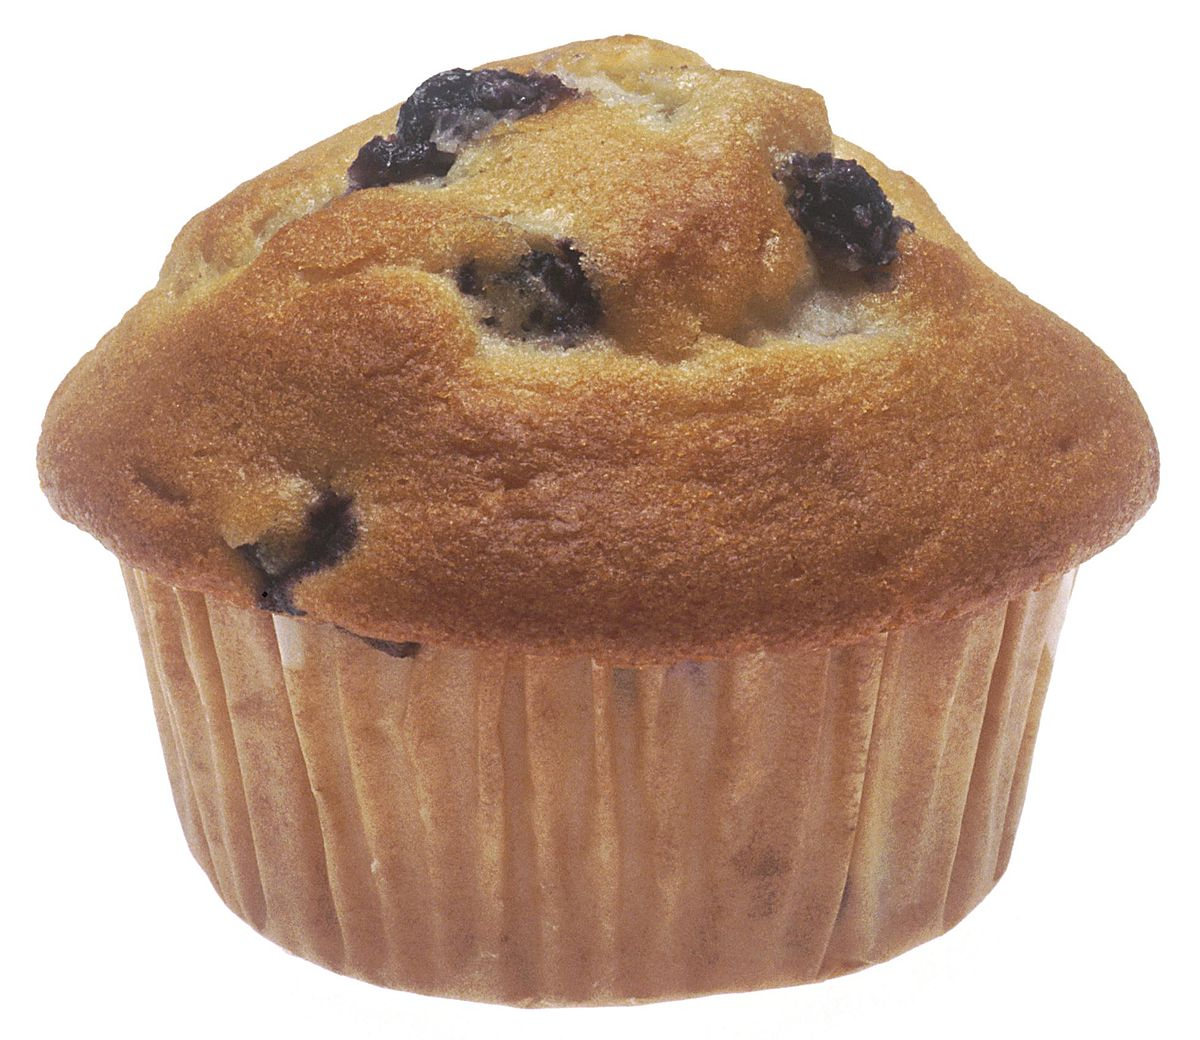 Image result for muffins